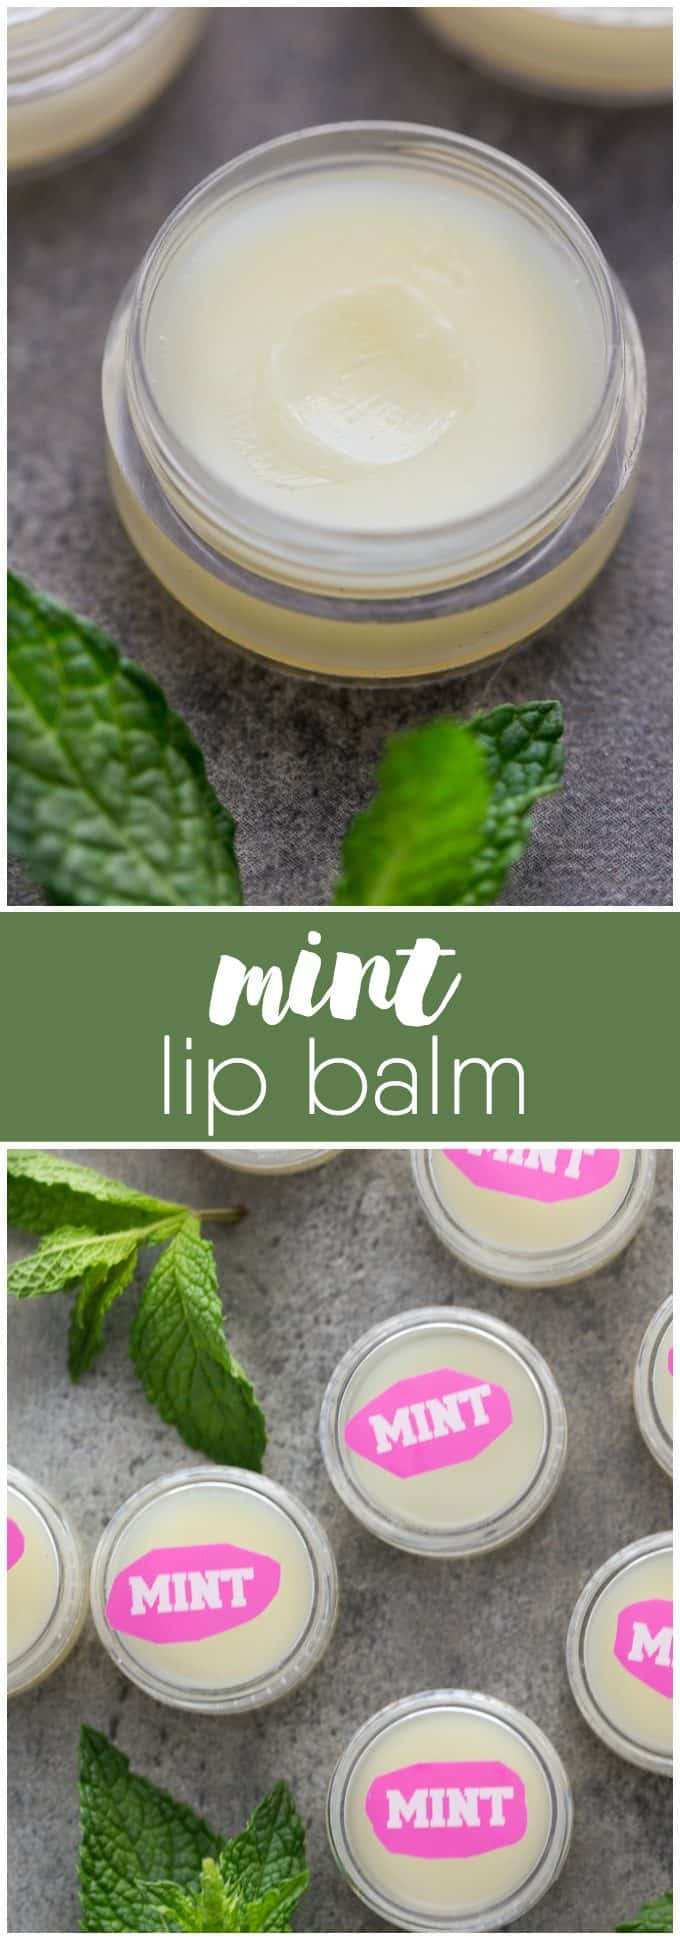 Mint Lip Balm - Your lips will feel soft and minty fresh with this easy DIY beauty recipe!